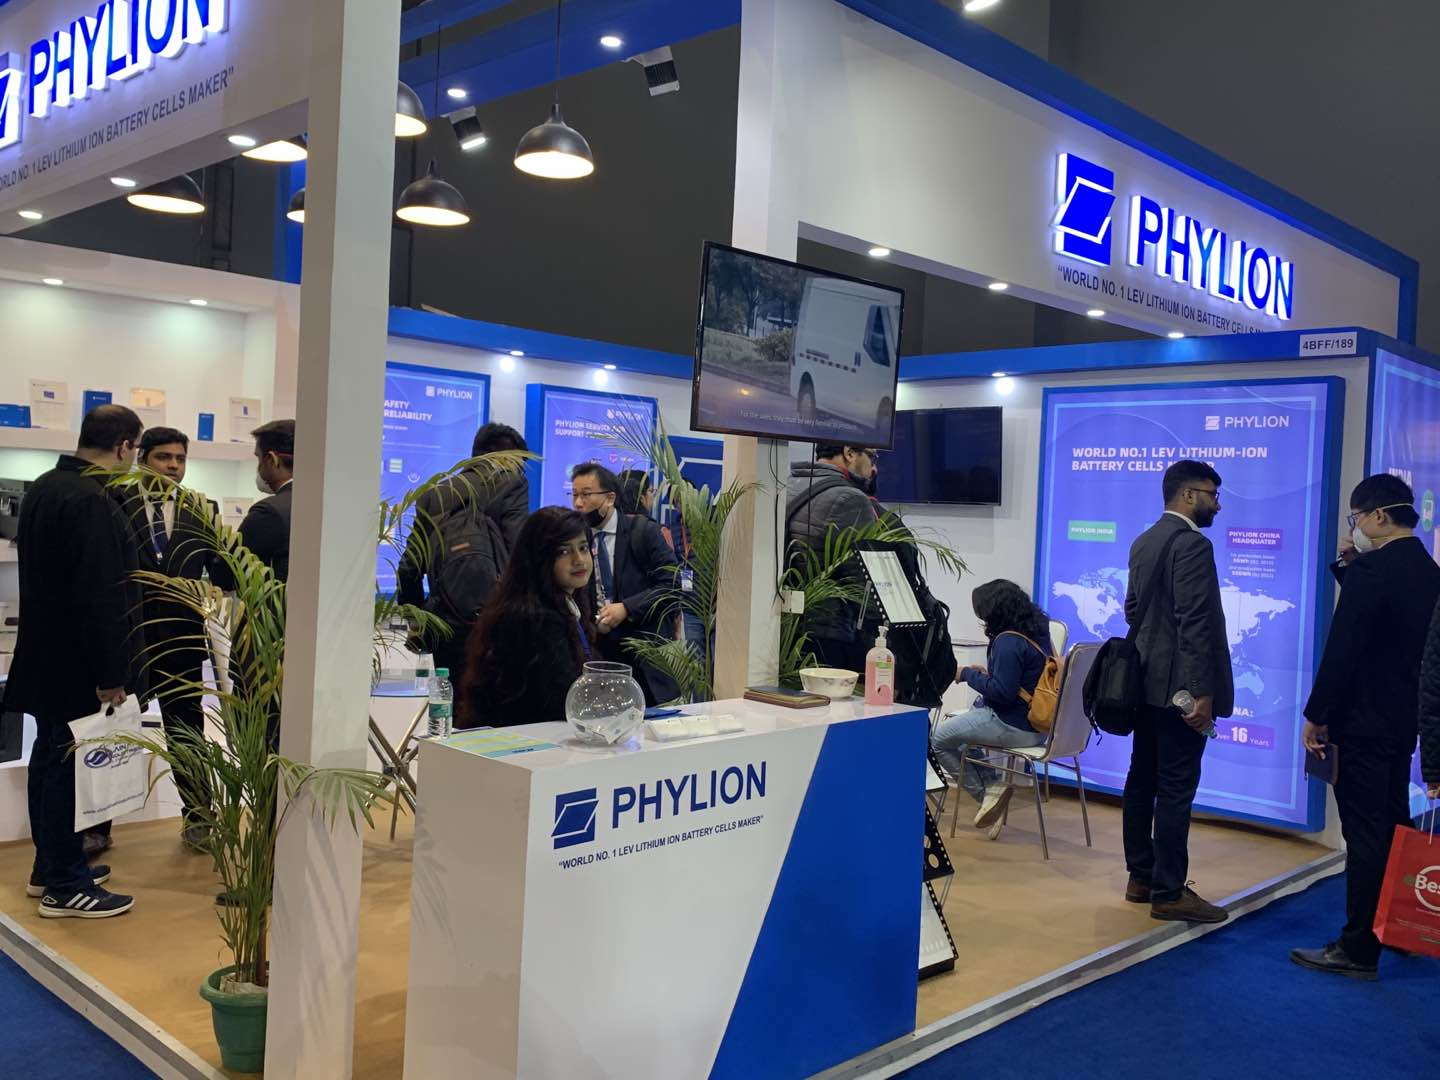 Participating Auto Expo, Phylion Contributes to India EV Journey